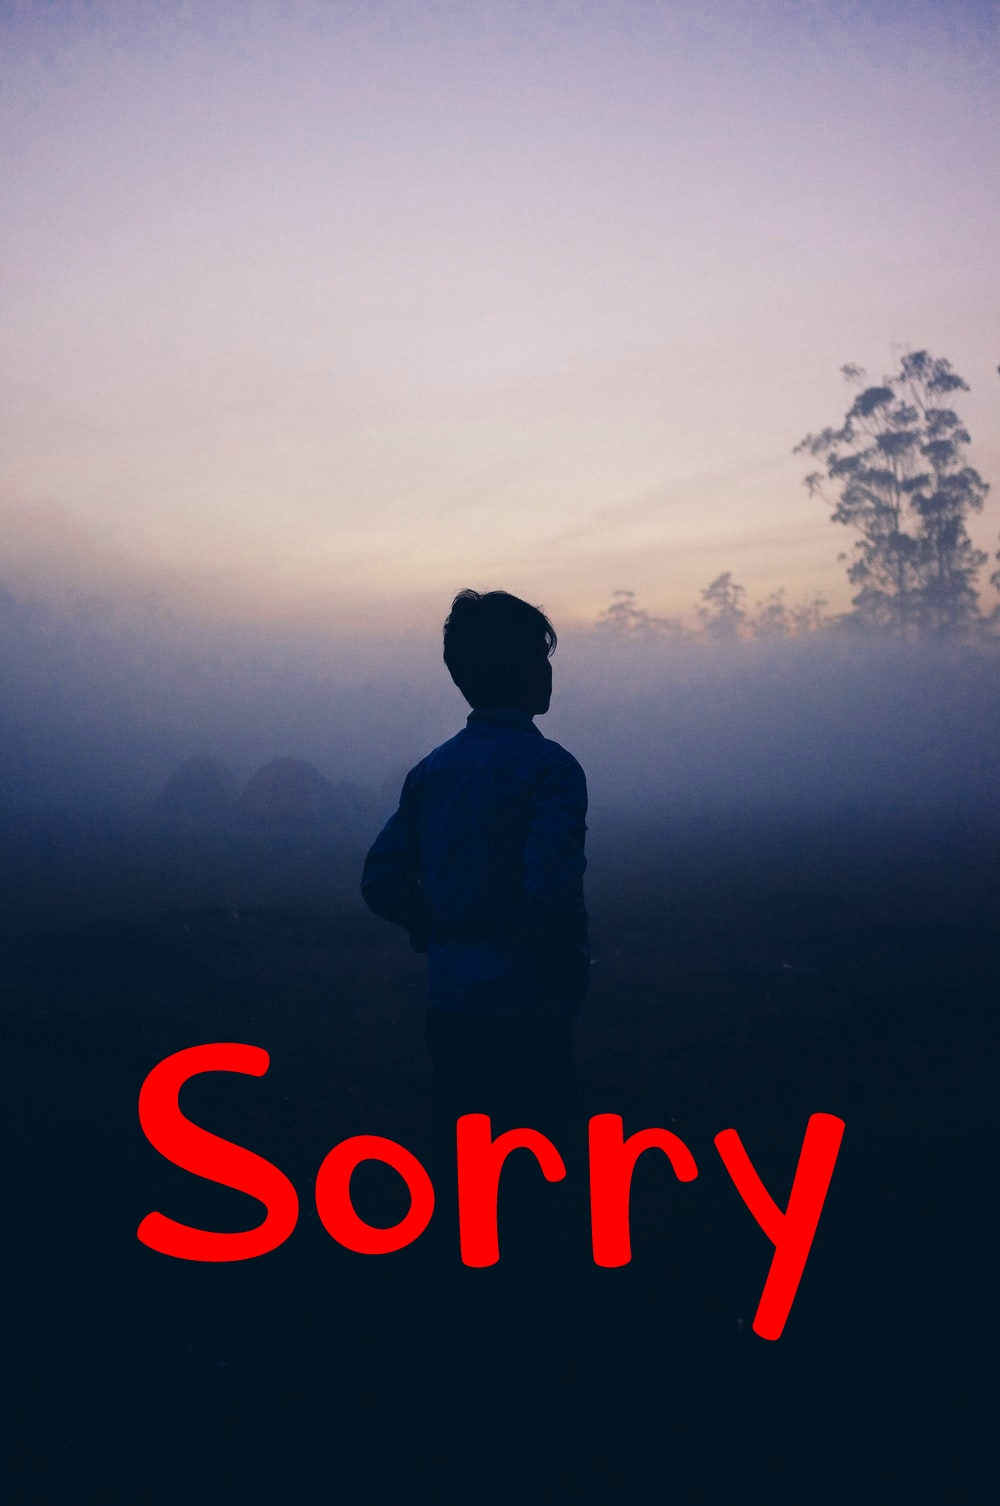 I am Sorry Images photo pics Free Download